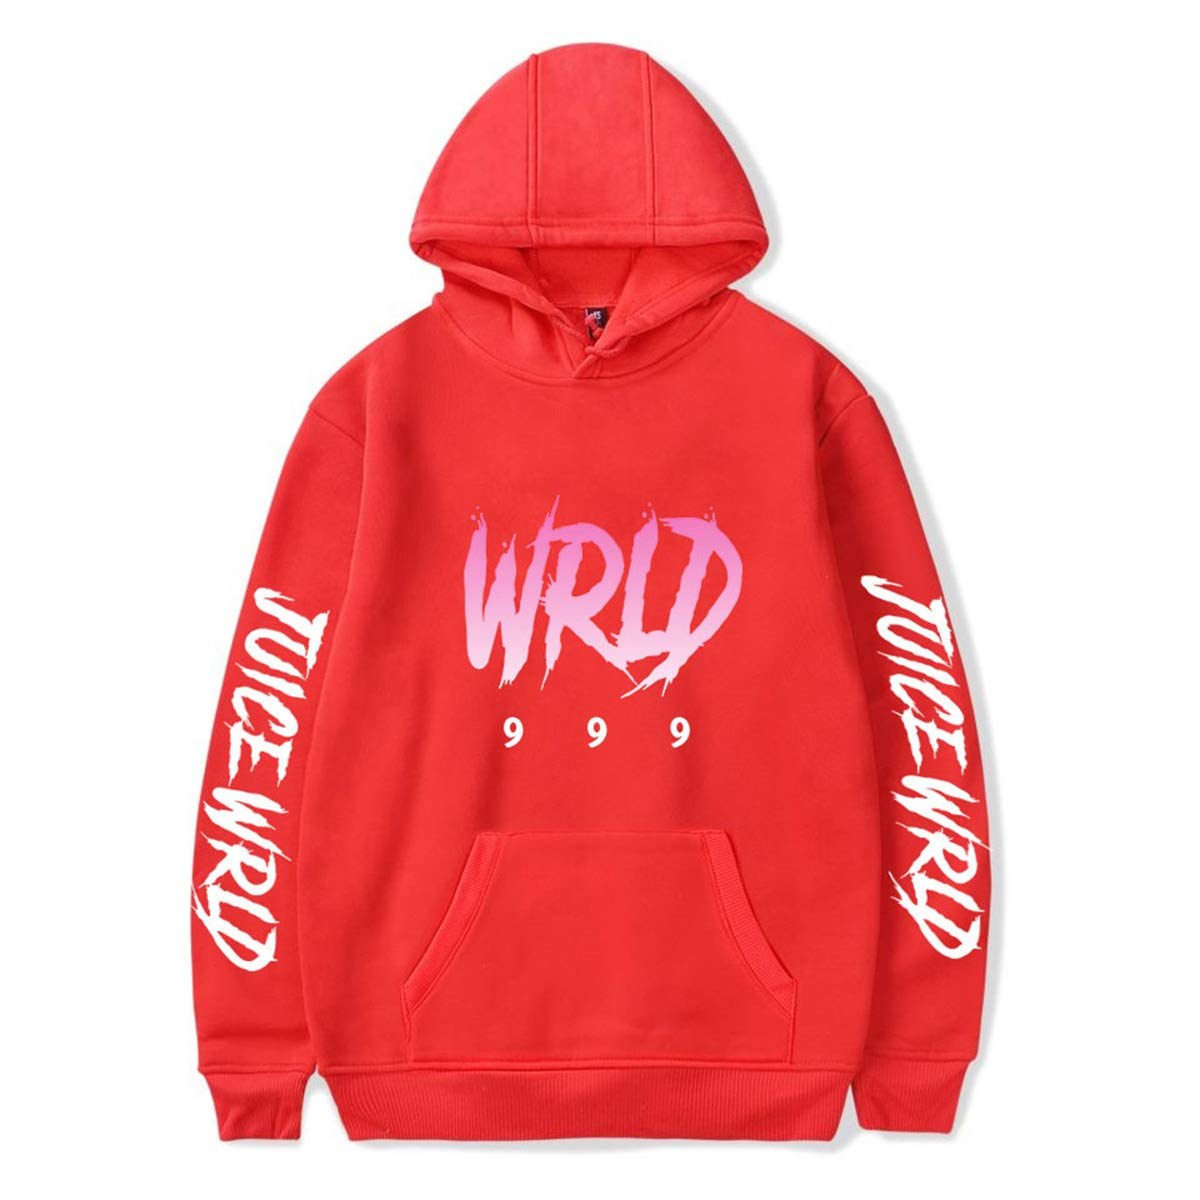 Fashion Juice Wrld 999 Word Hip Hop Cosplay Hoodie Sweatshirt Pullover Sportswear Sweater with Pocket for Youth and Adult